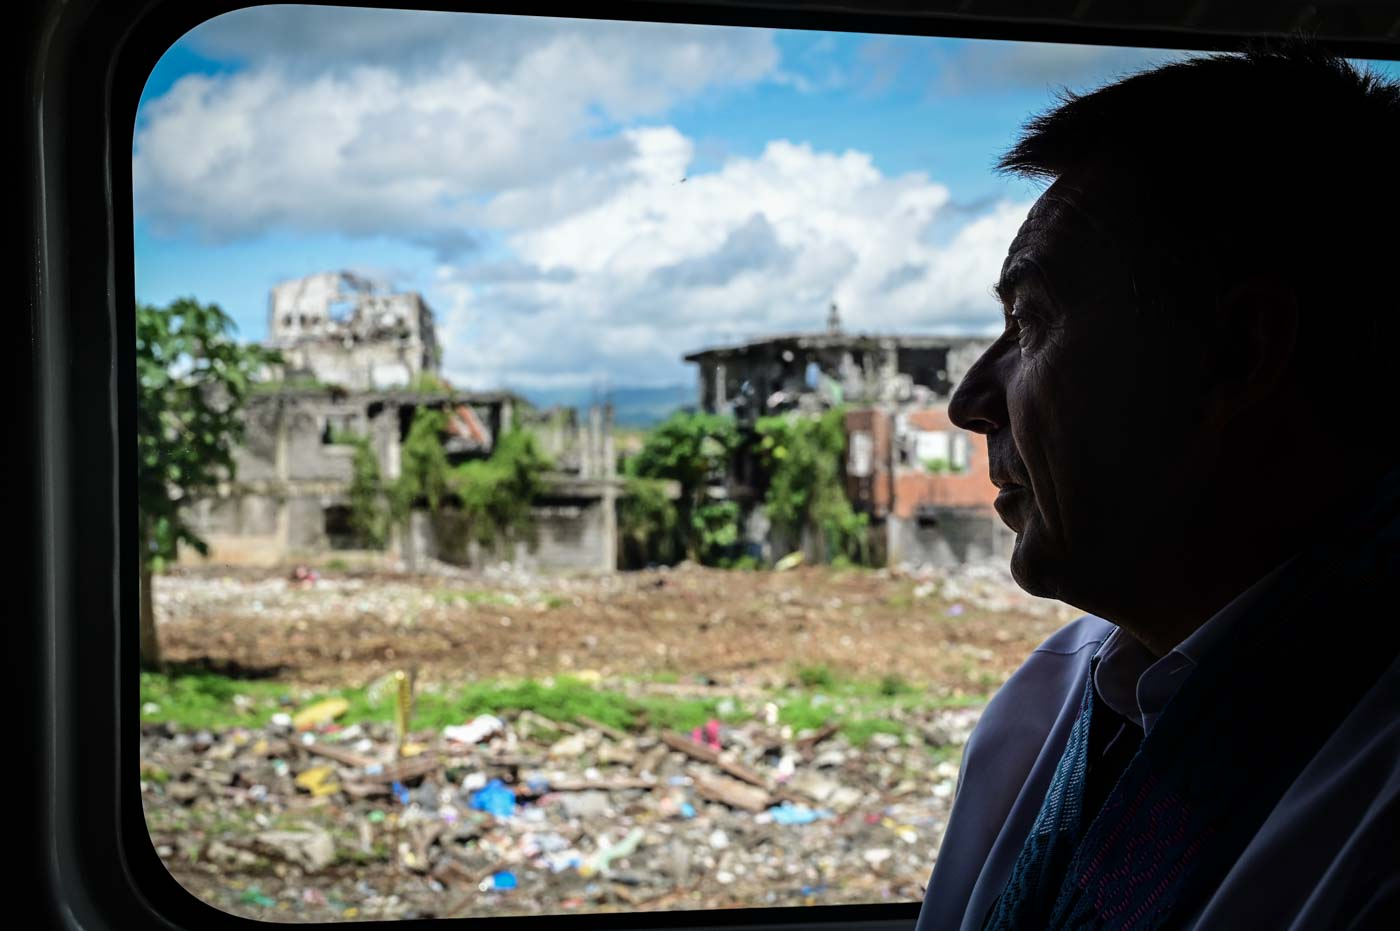 TOUR. Maurer tours around the city and sees the the devastation in the most affected area (MAA) of Marawi City, Lanao Del Sur. Photo by Alecs Ongcal/ICRC